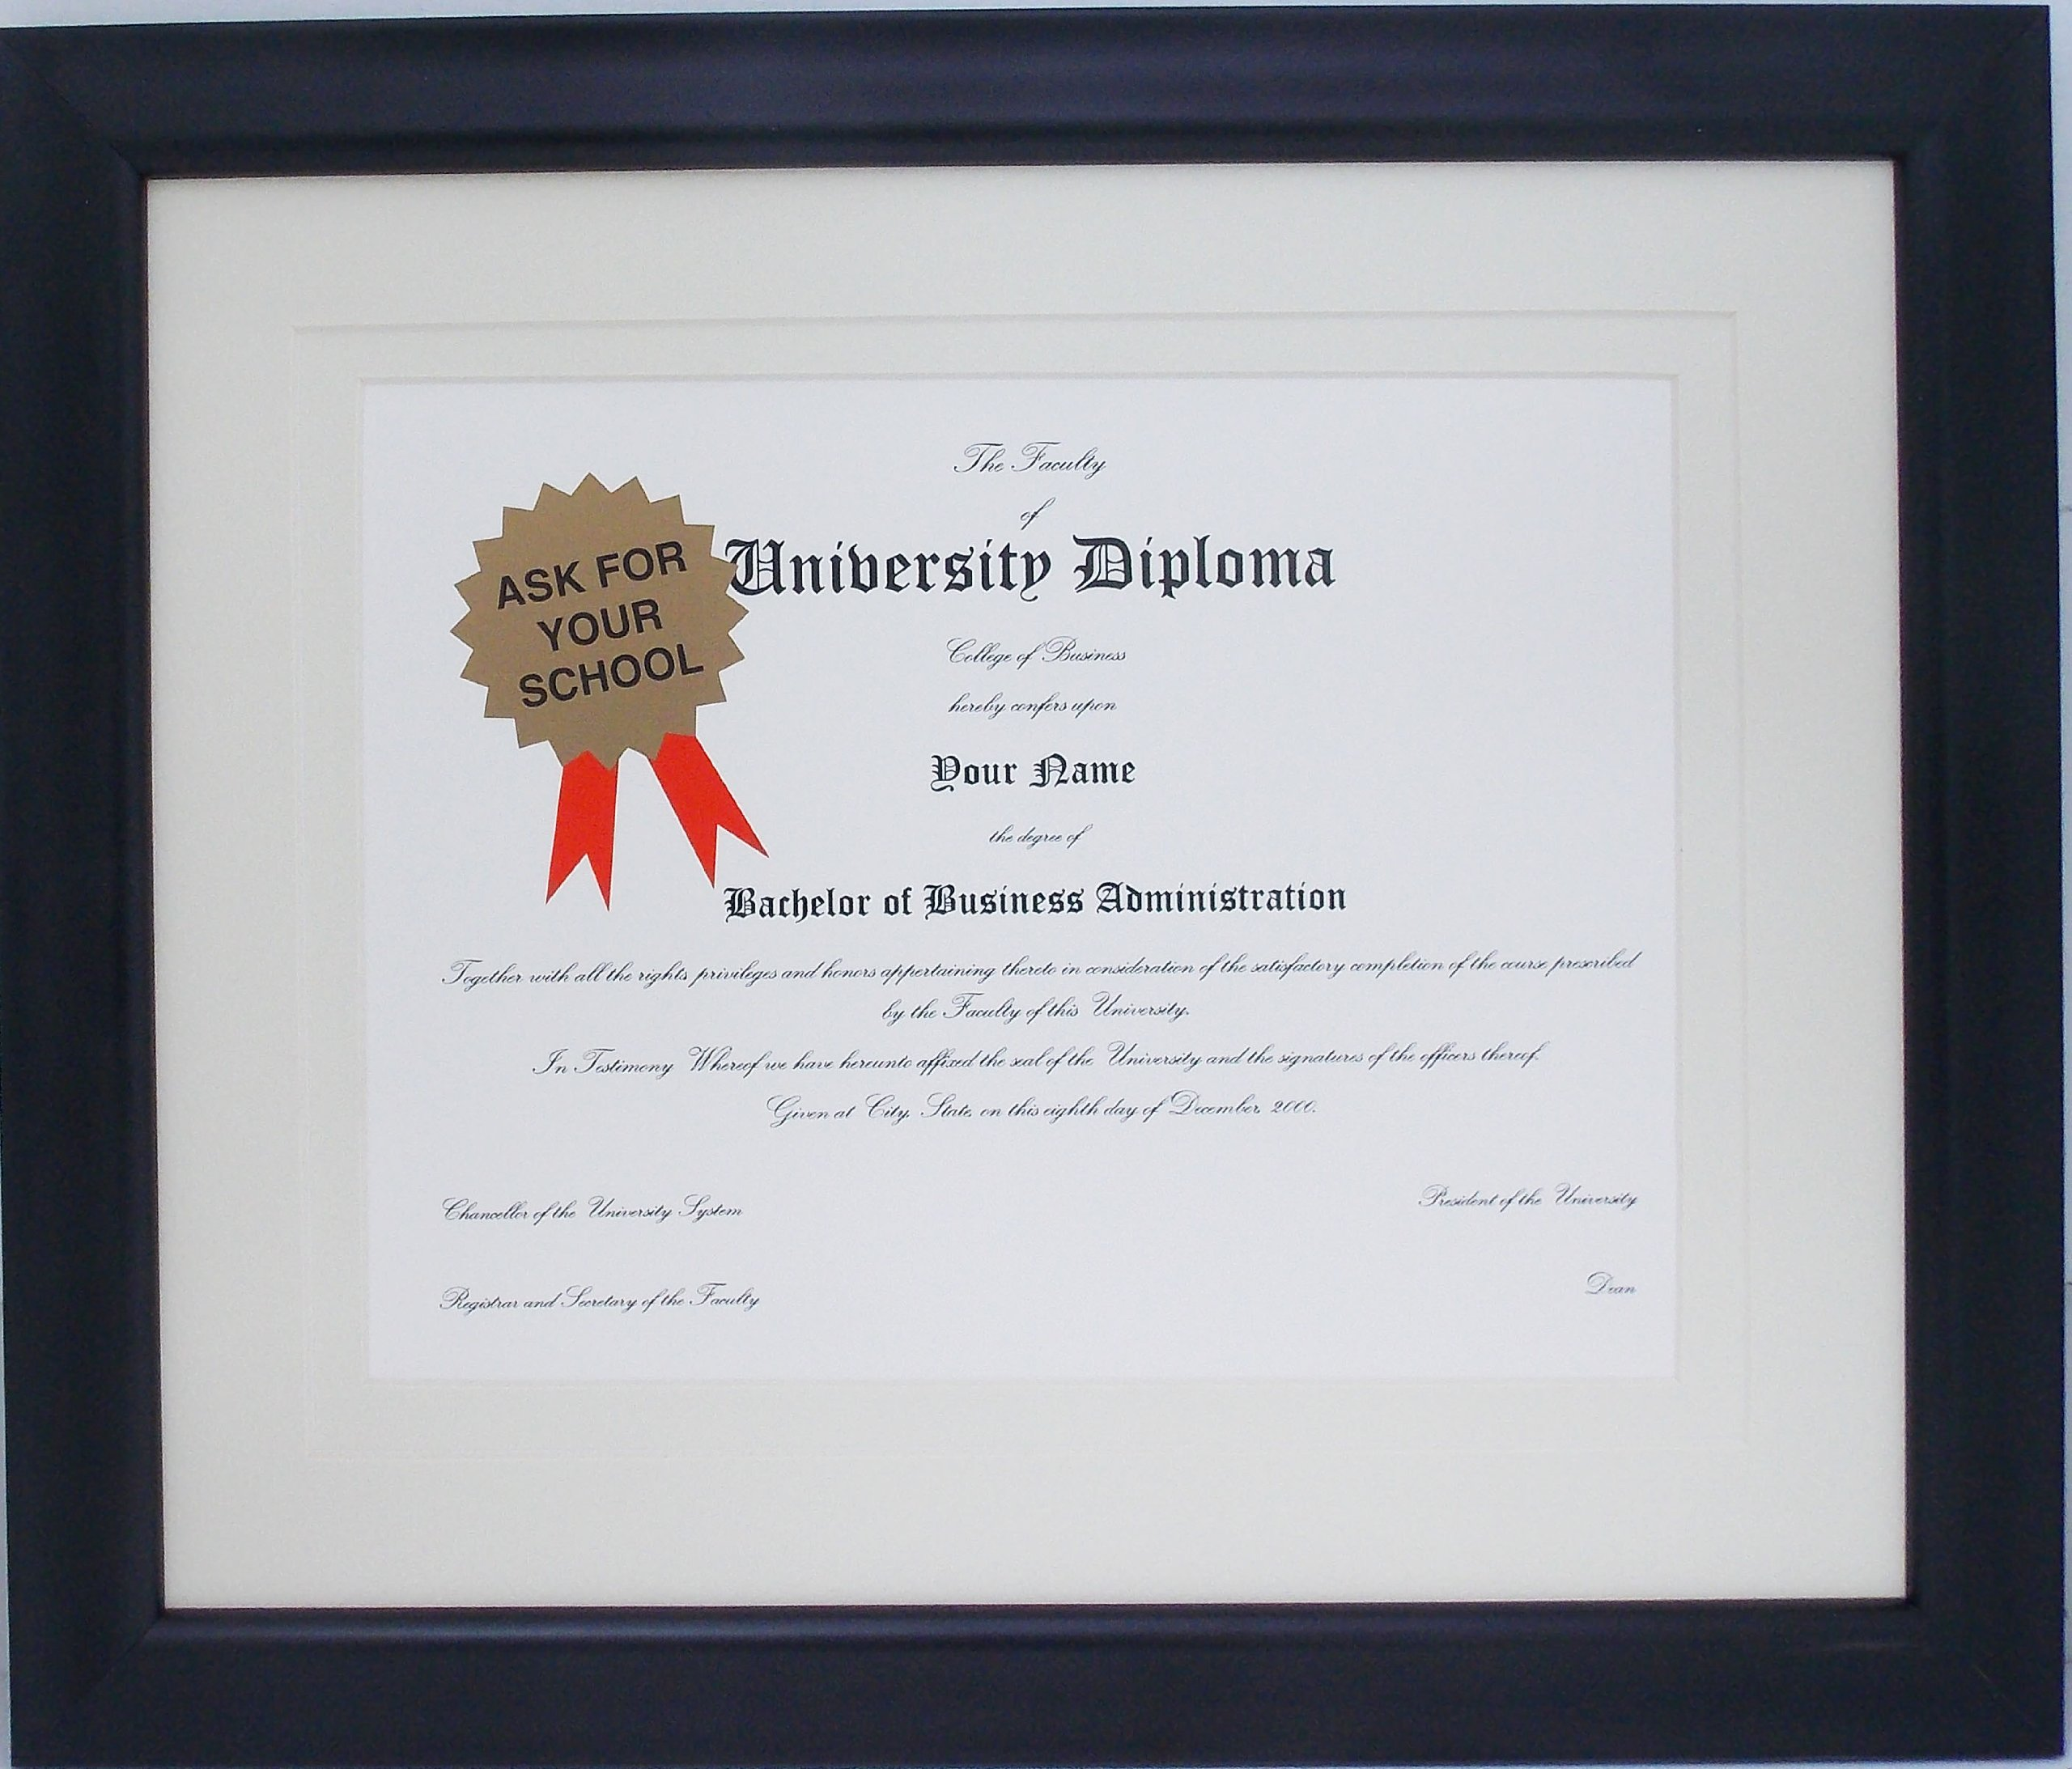 Graduation Diploma Certificate University College 8-1/2 X 11 Black Matted Frame